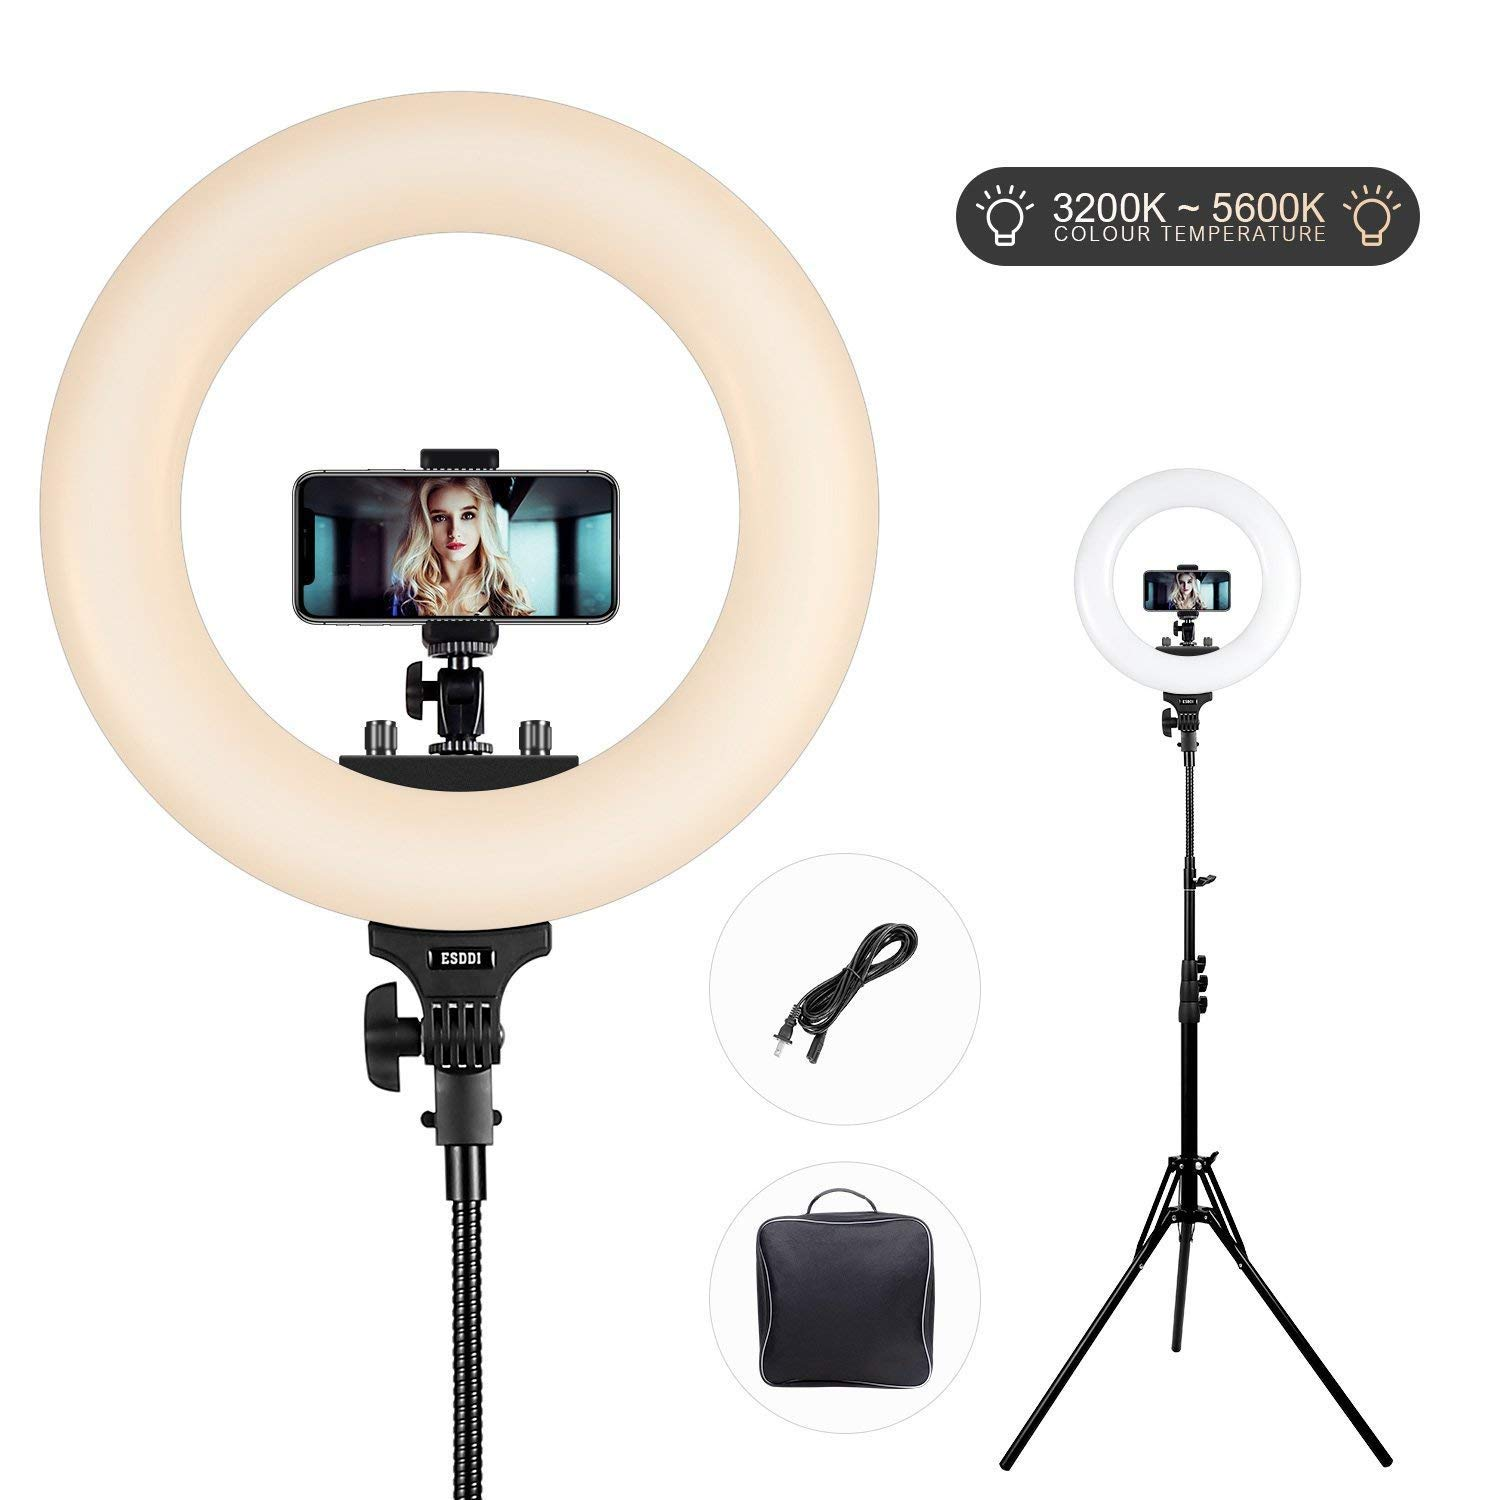 ESDDI 18inch Outer Dimmable SMD LED Ring Light 3200K-5600K Adjustable Color Temperature with Adjustable Light Stand, Phone Adapter, Soft Tube for Studio Lighting, YouTube Video, Vlog, Selfie, Portrait